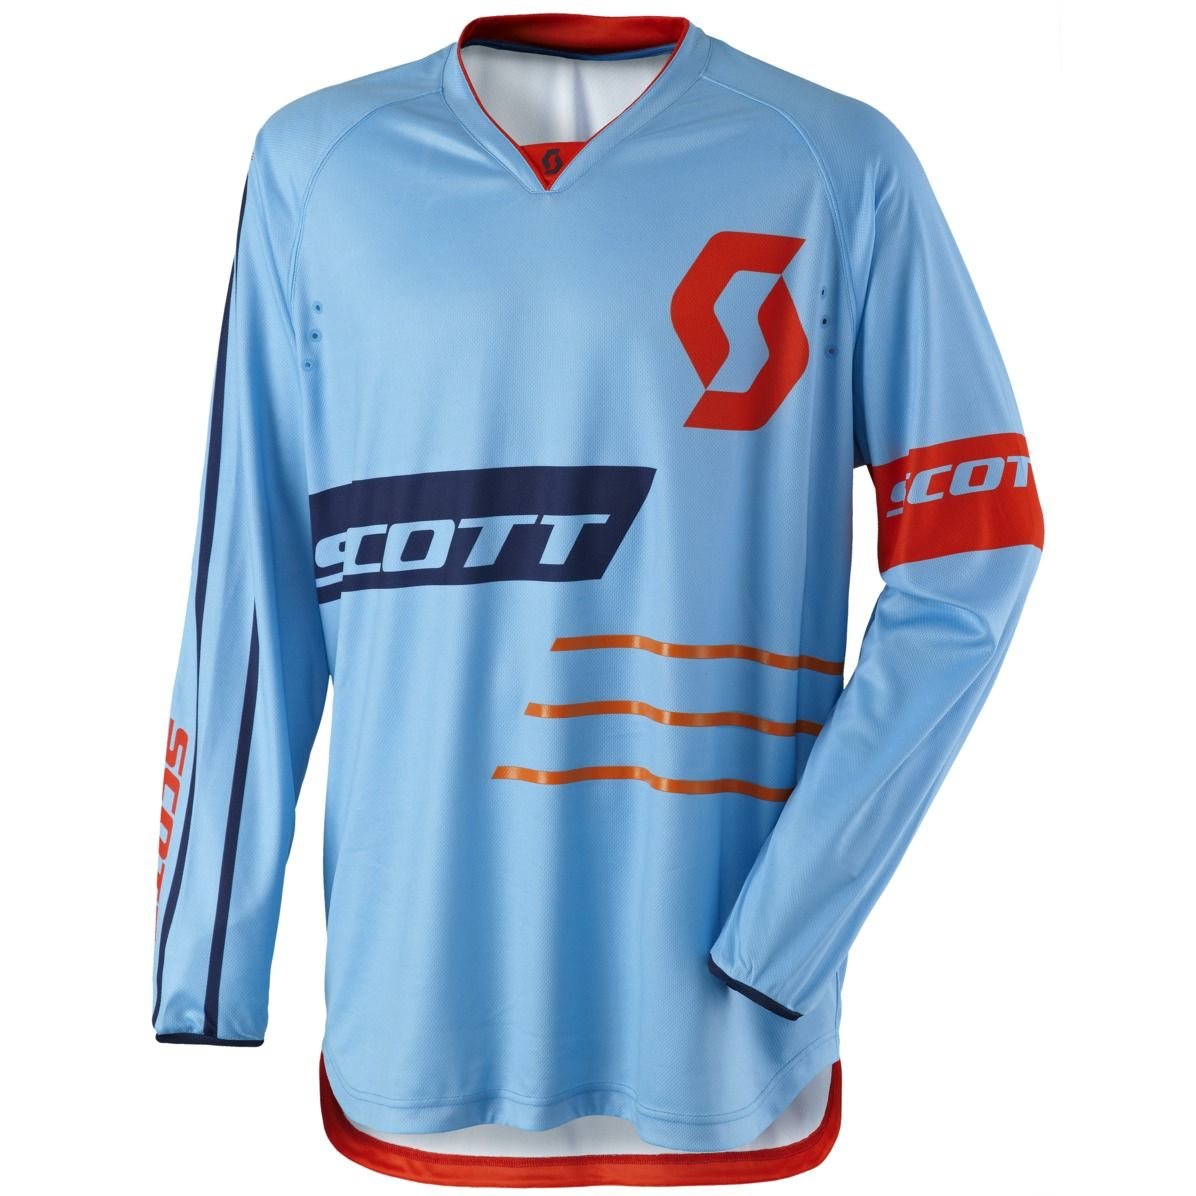 Maillot cross Scott destockage 350 DIRT BLUE ORANGE 2017